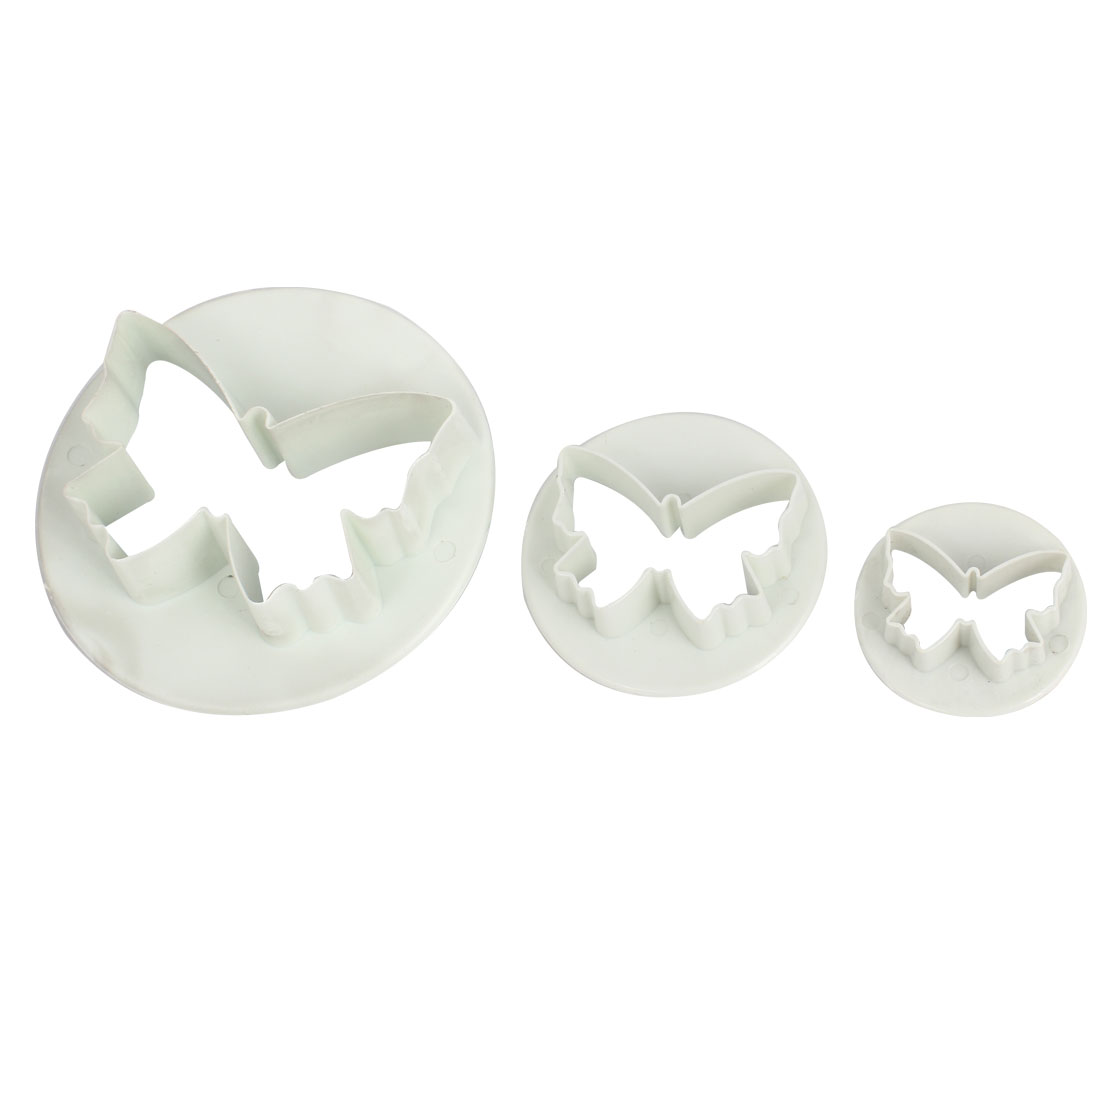 3 in 1 White Plastic DIY Butterfly Shape Cookie Biscuit Cutter Mold Mould